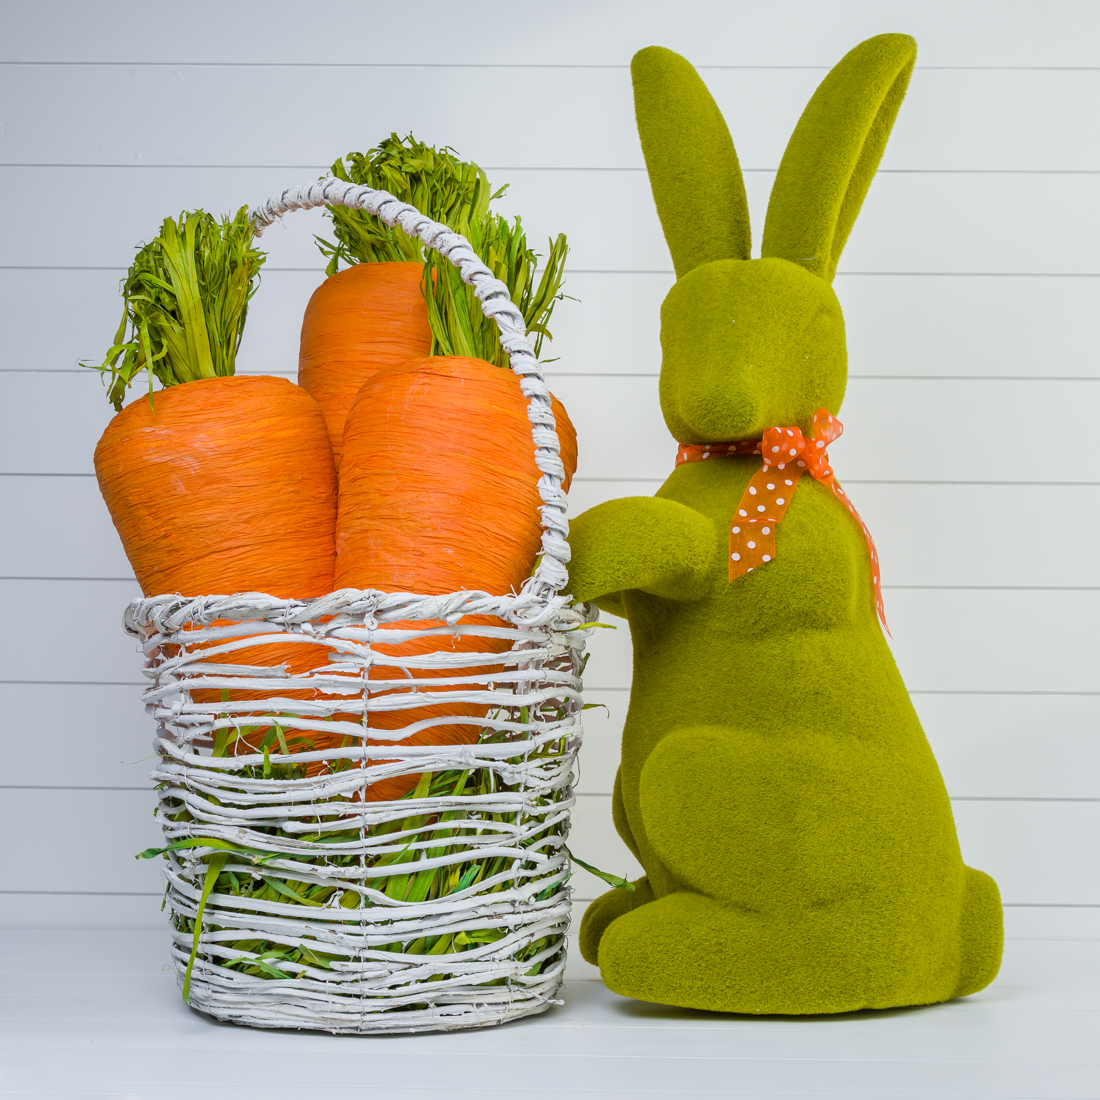 Giant Bunny with Basket of Carrots